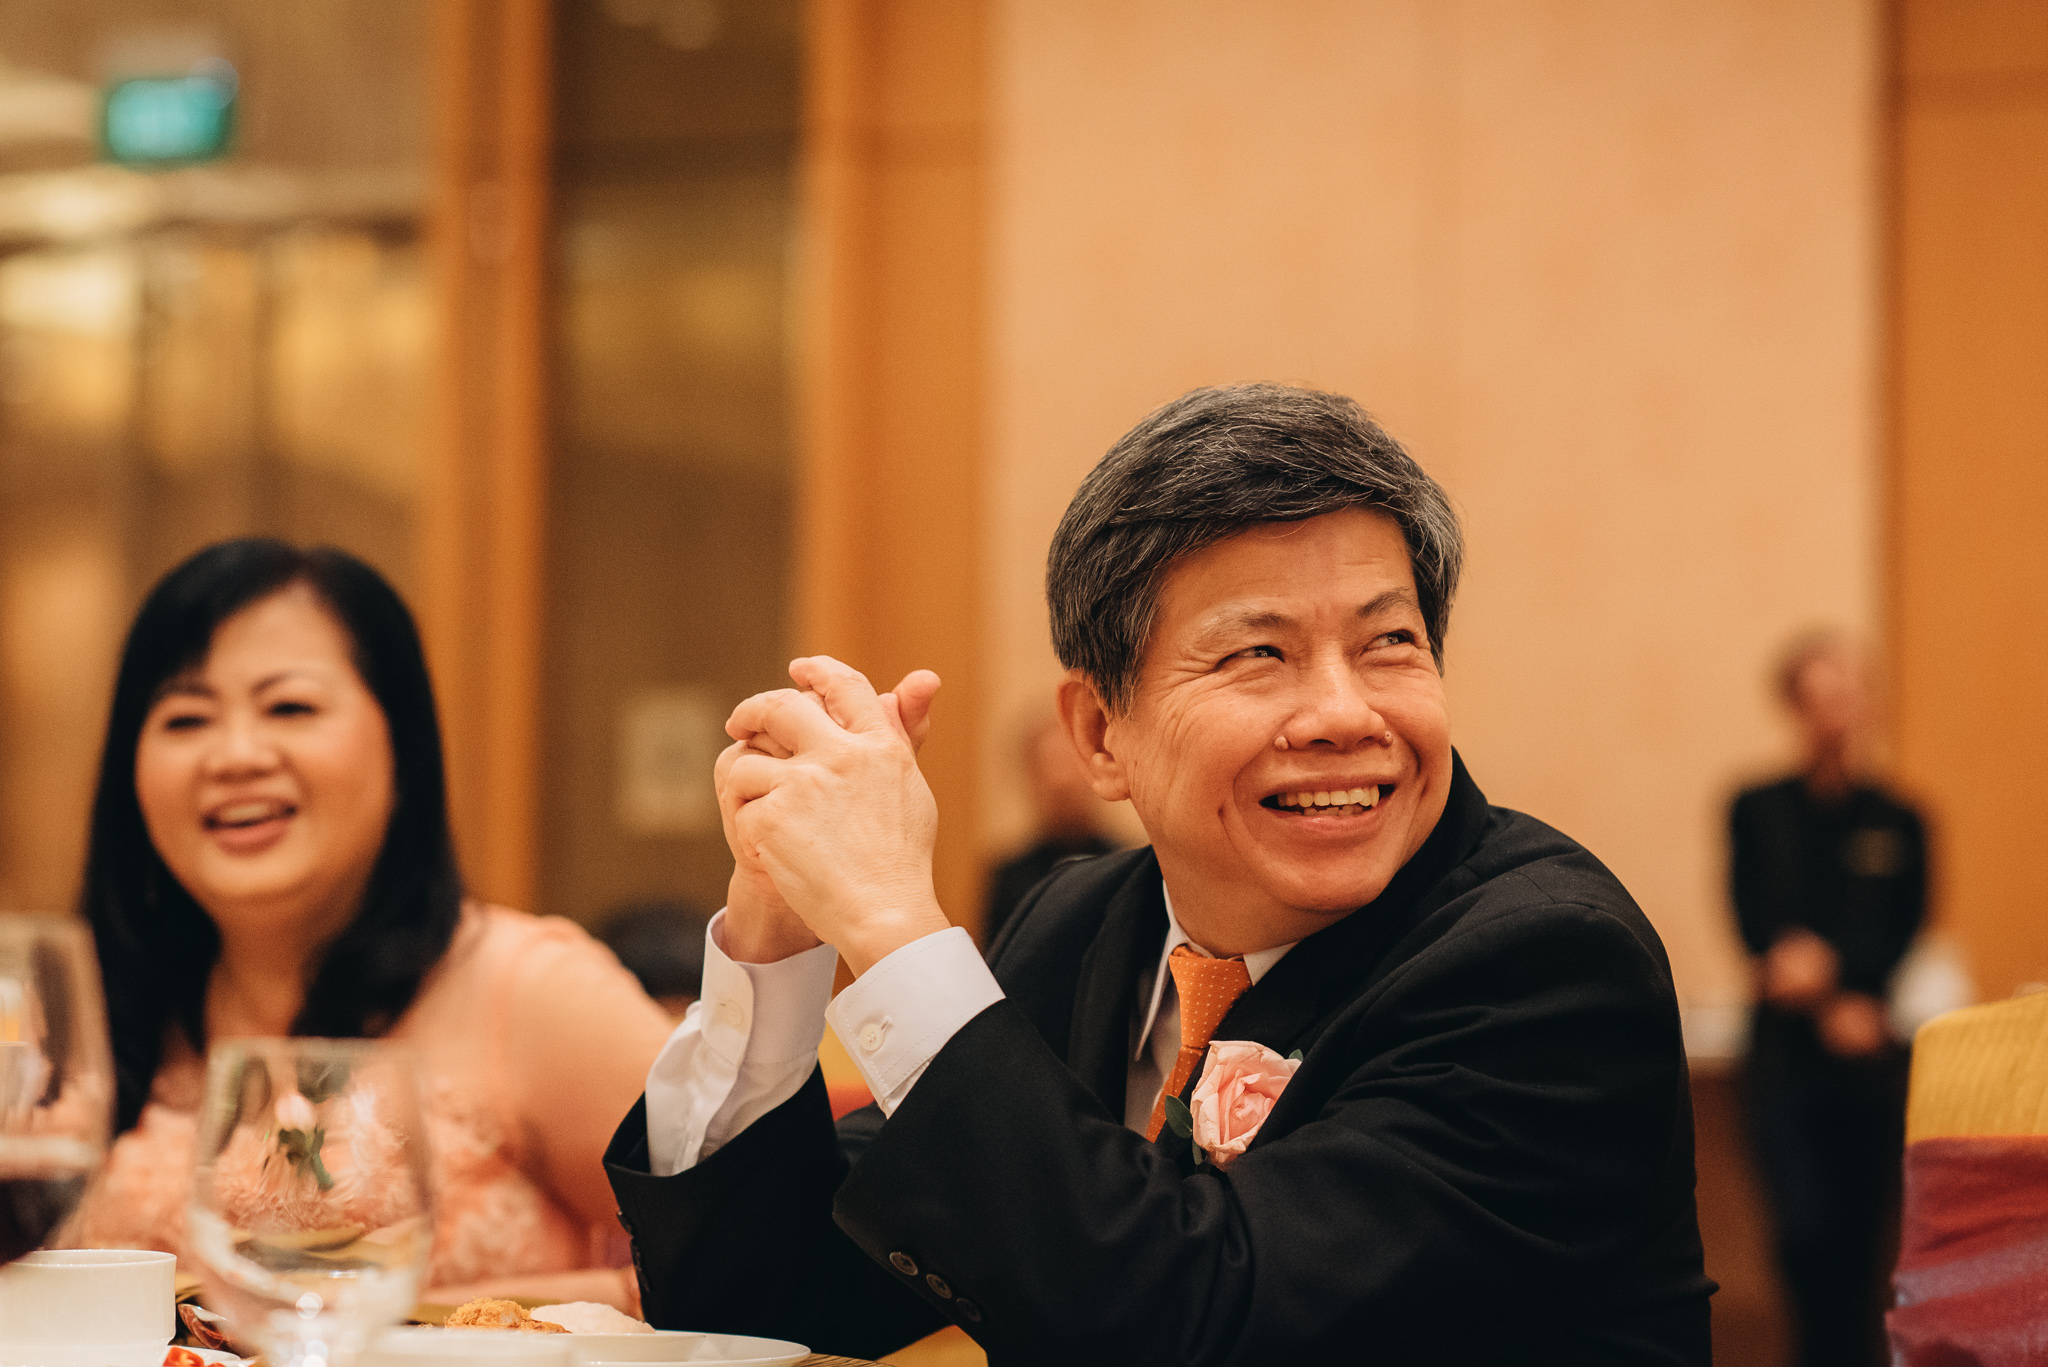 See Yuen & Keng Yeow Wedding Day Highlights (resized for sharing) - 140.jpg